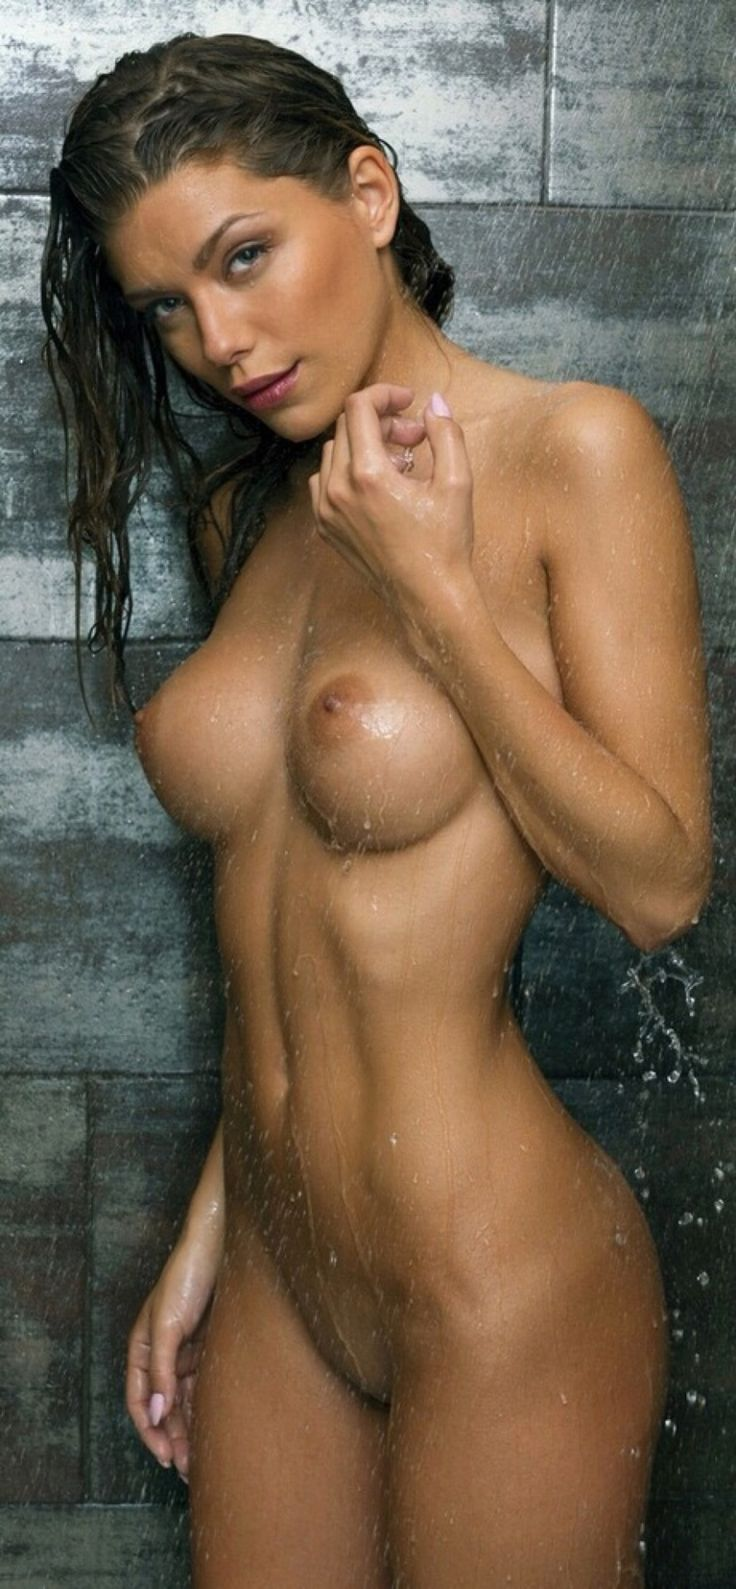 Fine naked women in shower